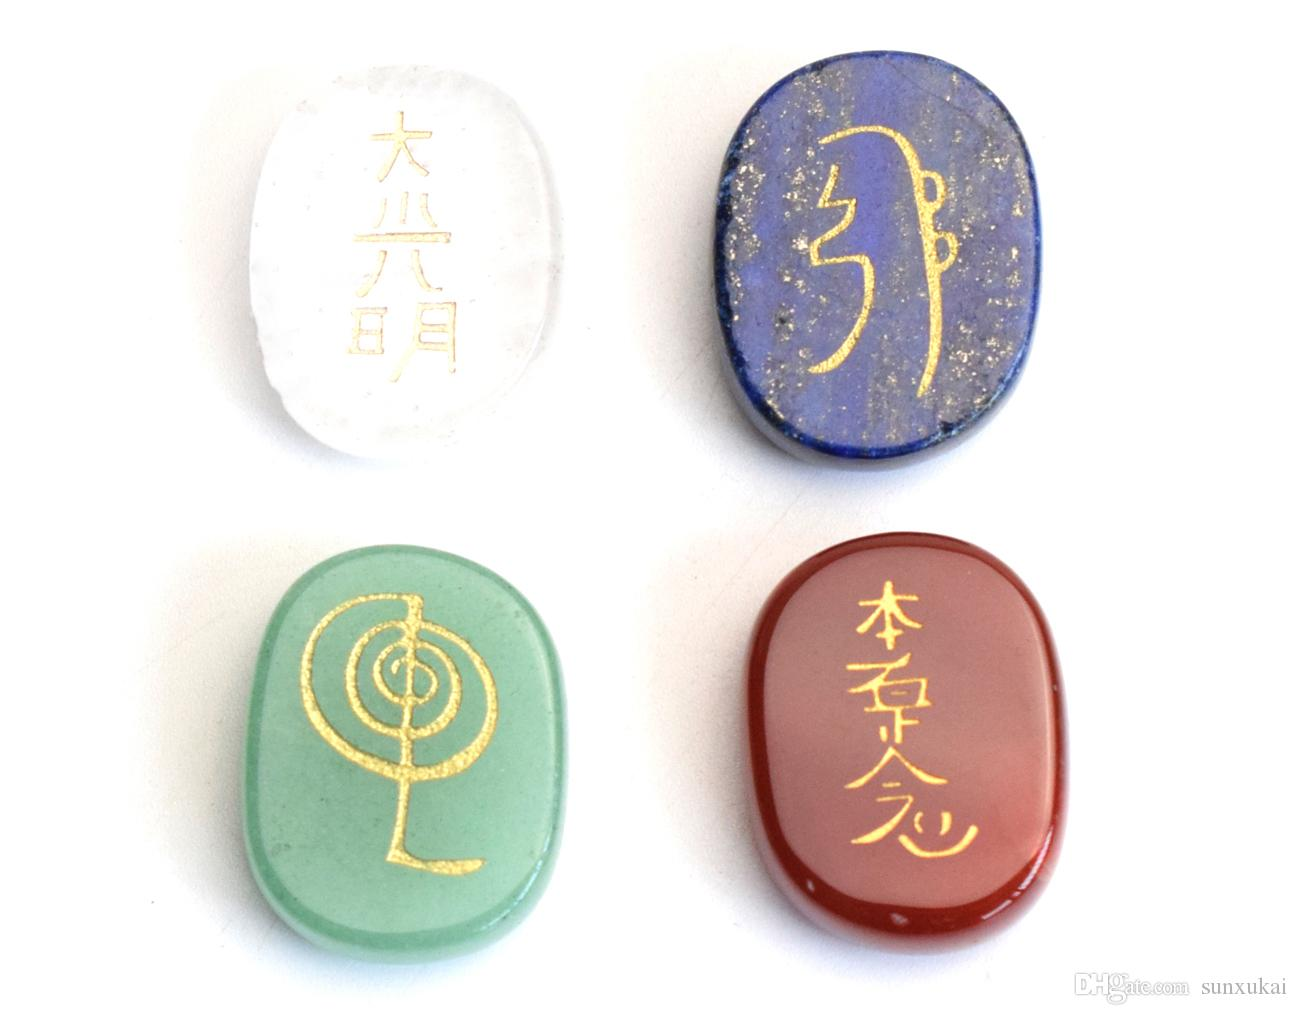 Of 4 Small Size Chakra Healing Crystal Engraved Reiki Symbols 1